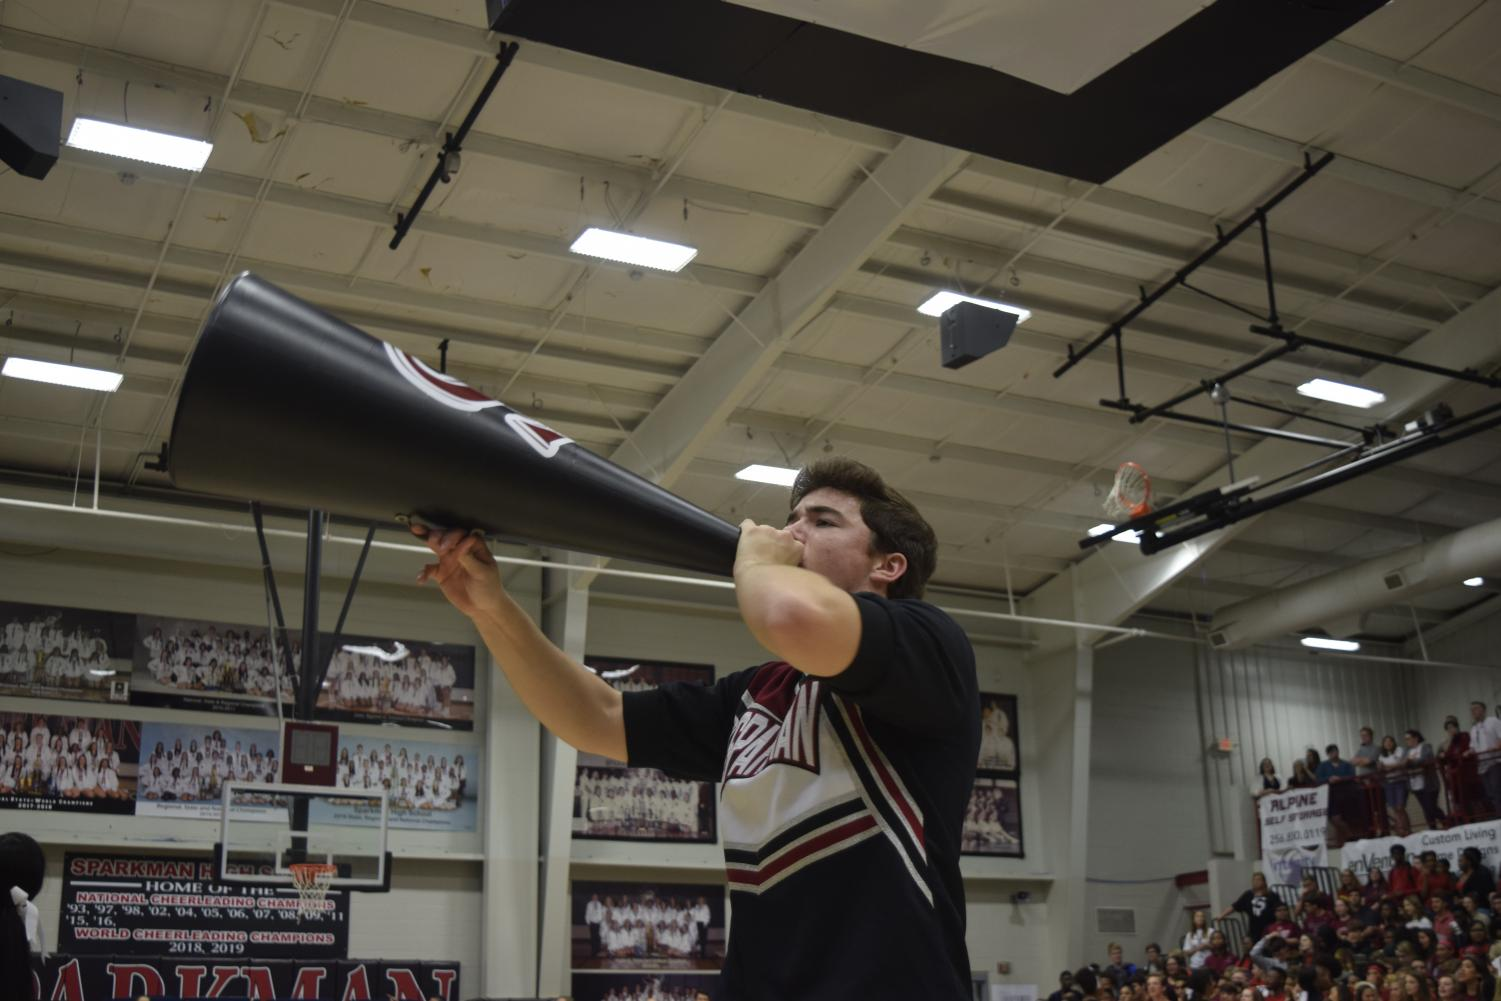 Junior Hayden Ottum chants cheers into the megaphone, bringing the team to victory at Regionals.